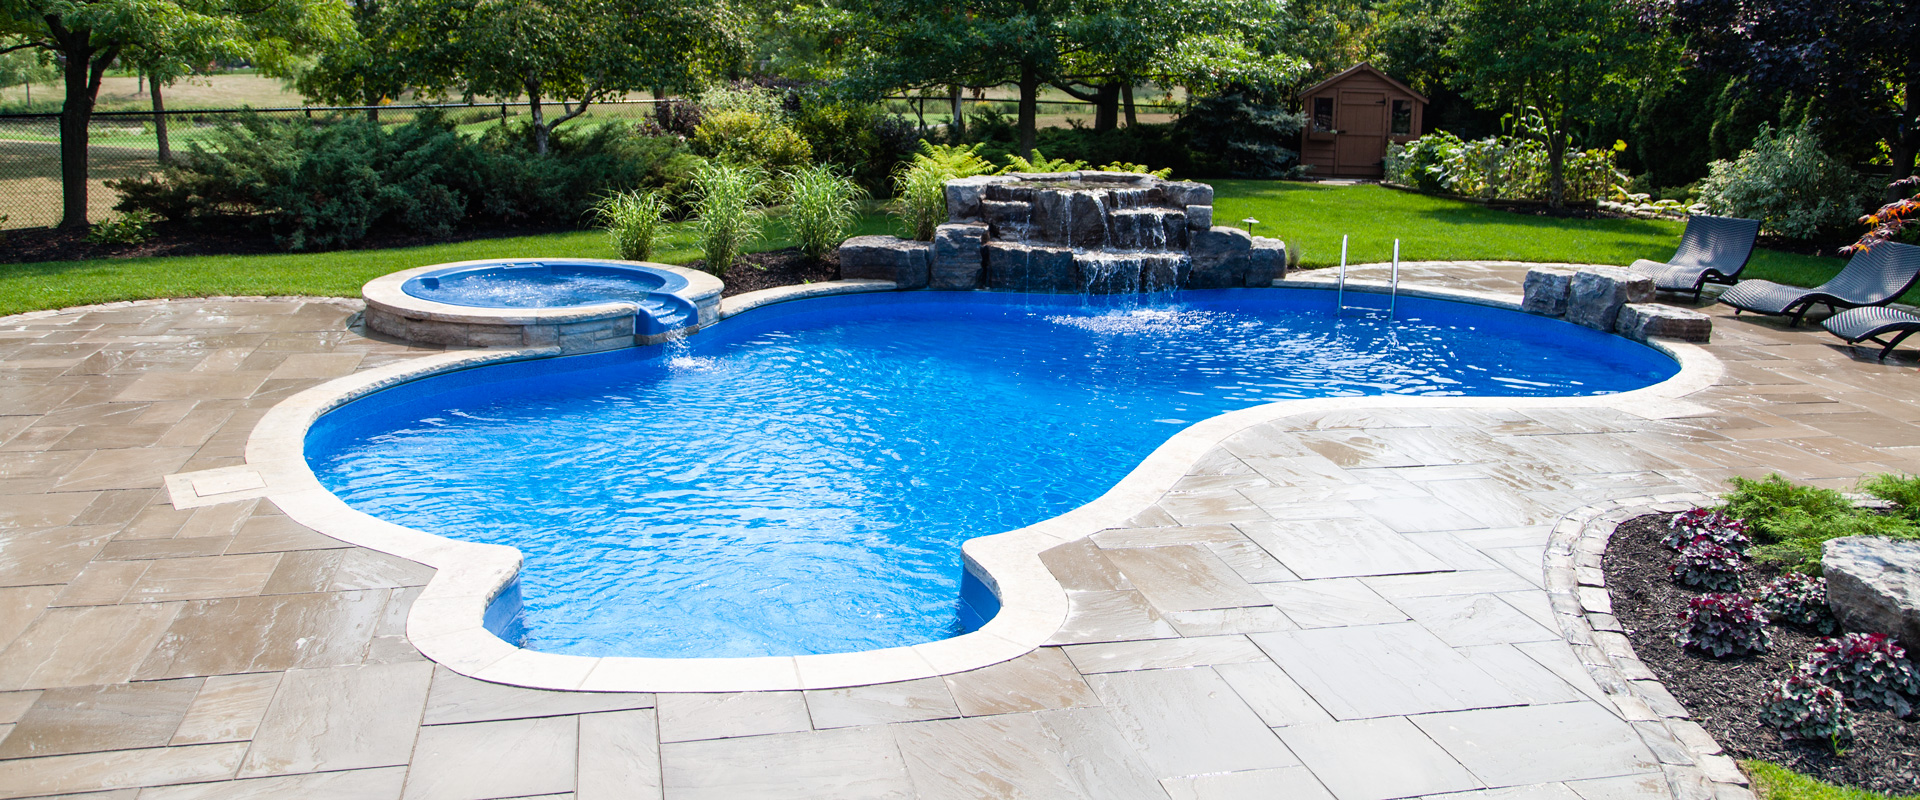 How to convert your pool to salt water boldt pools and spa for Convert swimming pool to saltwater